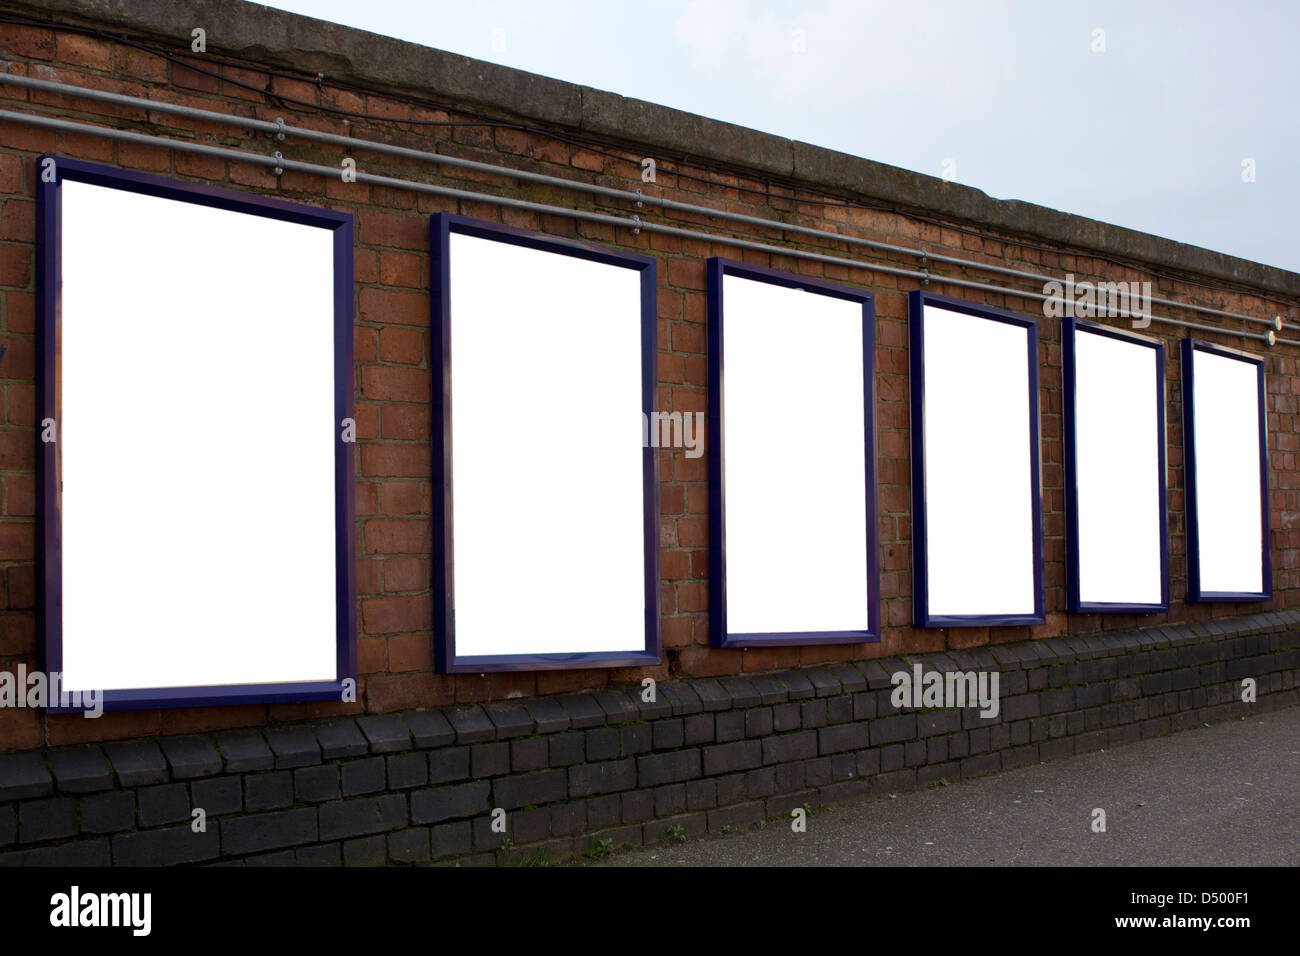 Blank posters at train station - Stock Image